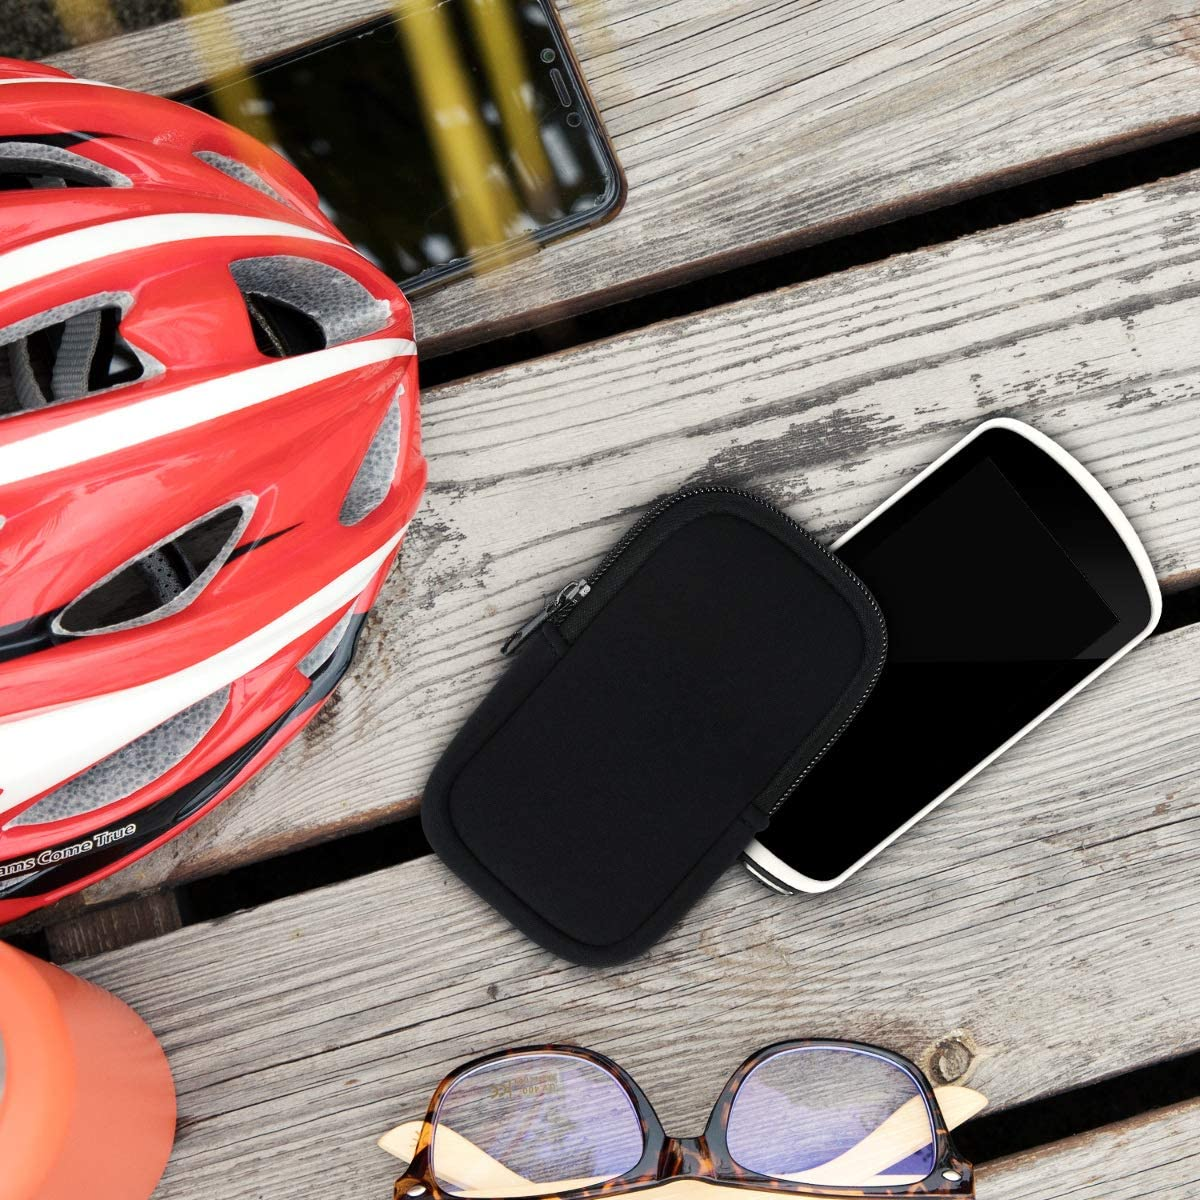 Black 1000 Protective Zippered Pouch Holder for Bike GPS kwmobile Case Compatible with Garmin Edge 1030//1030 Plus